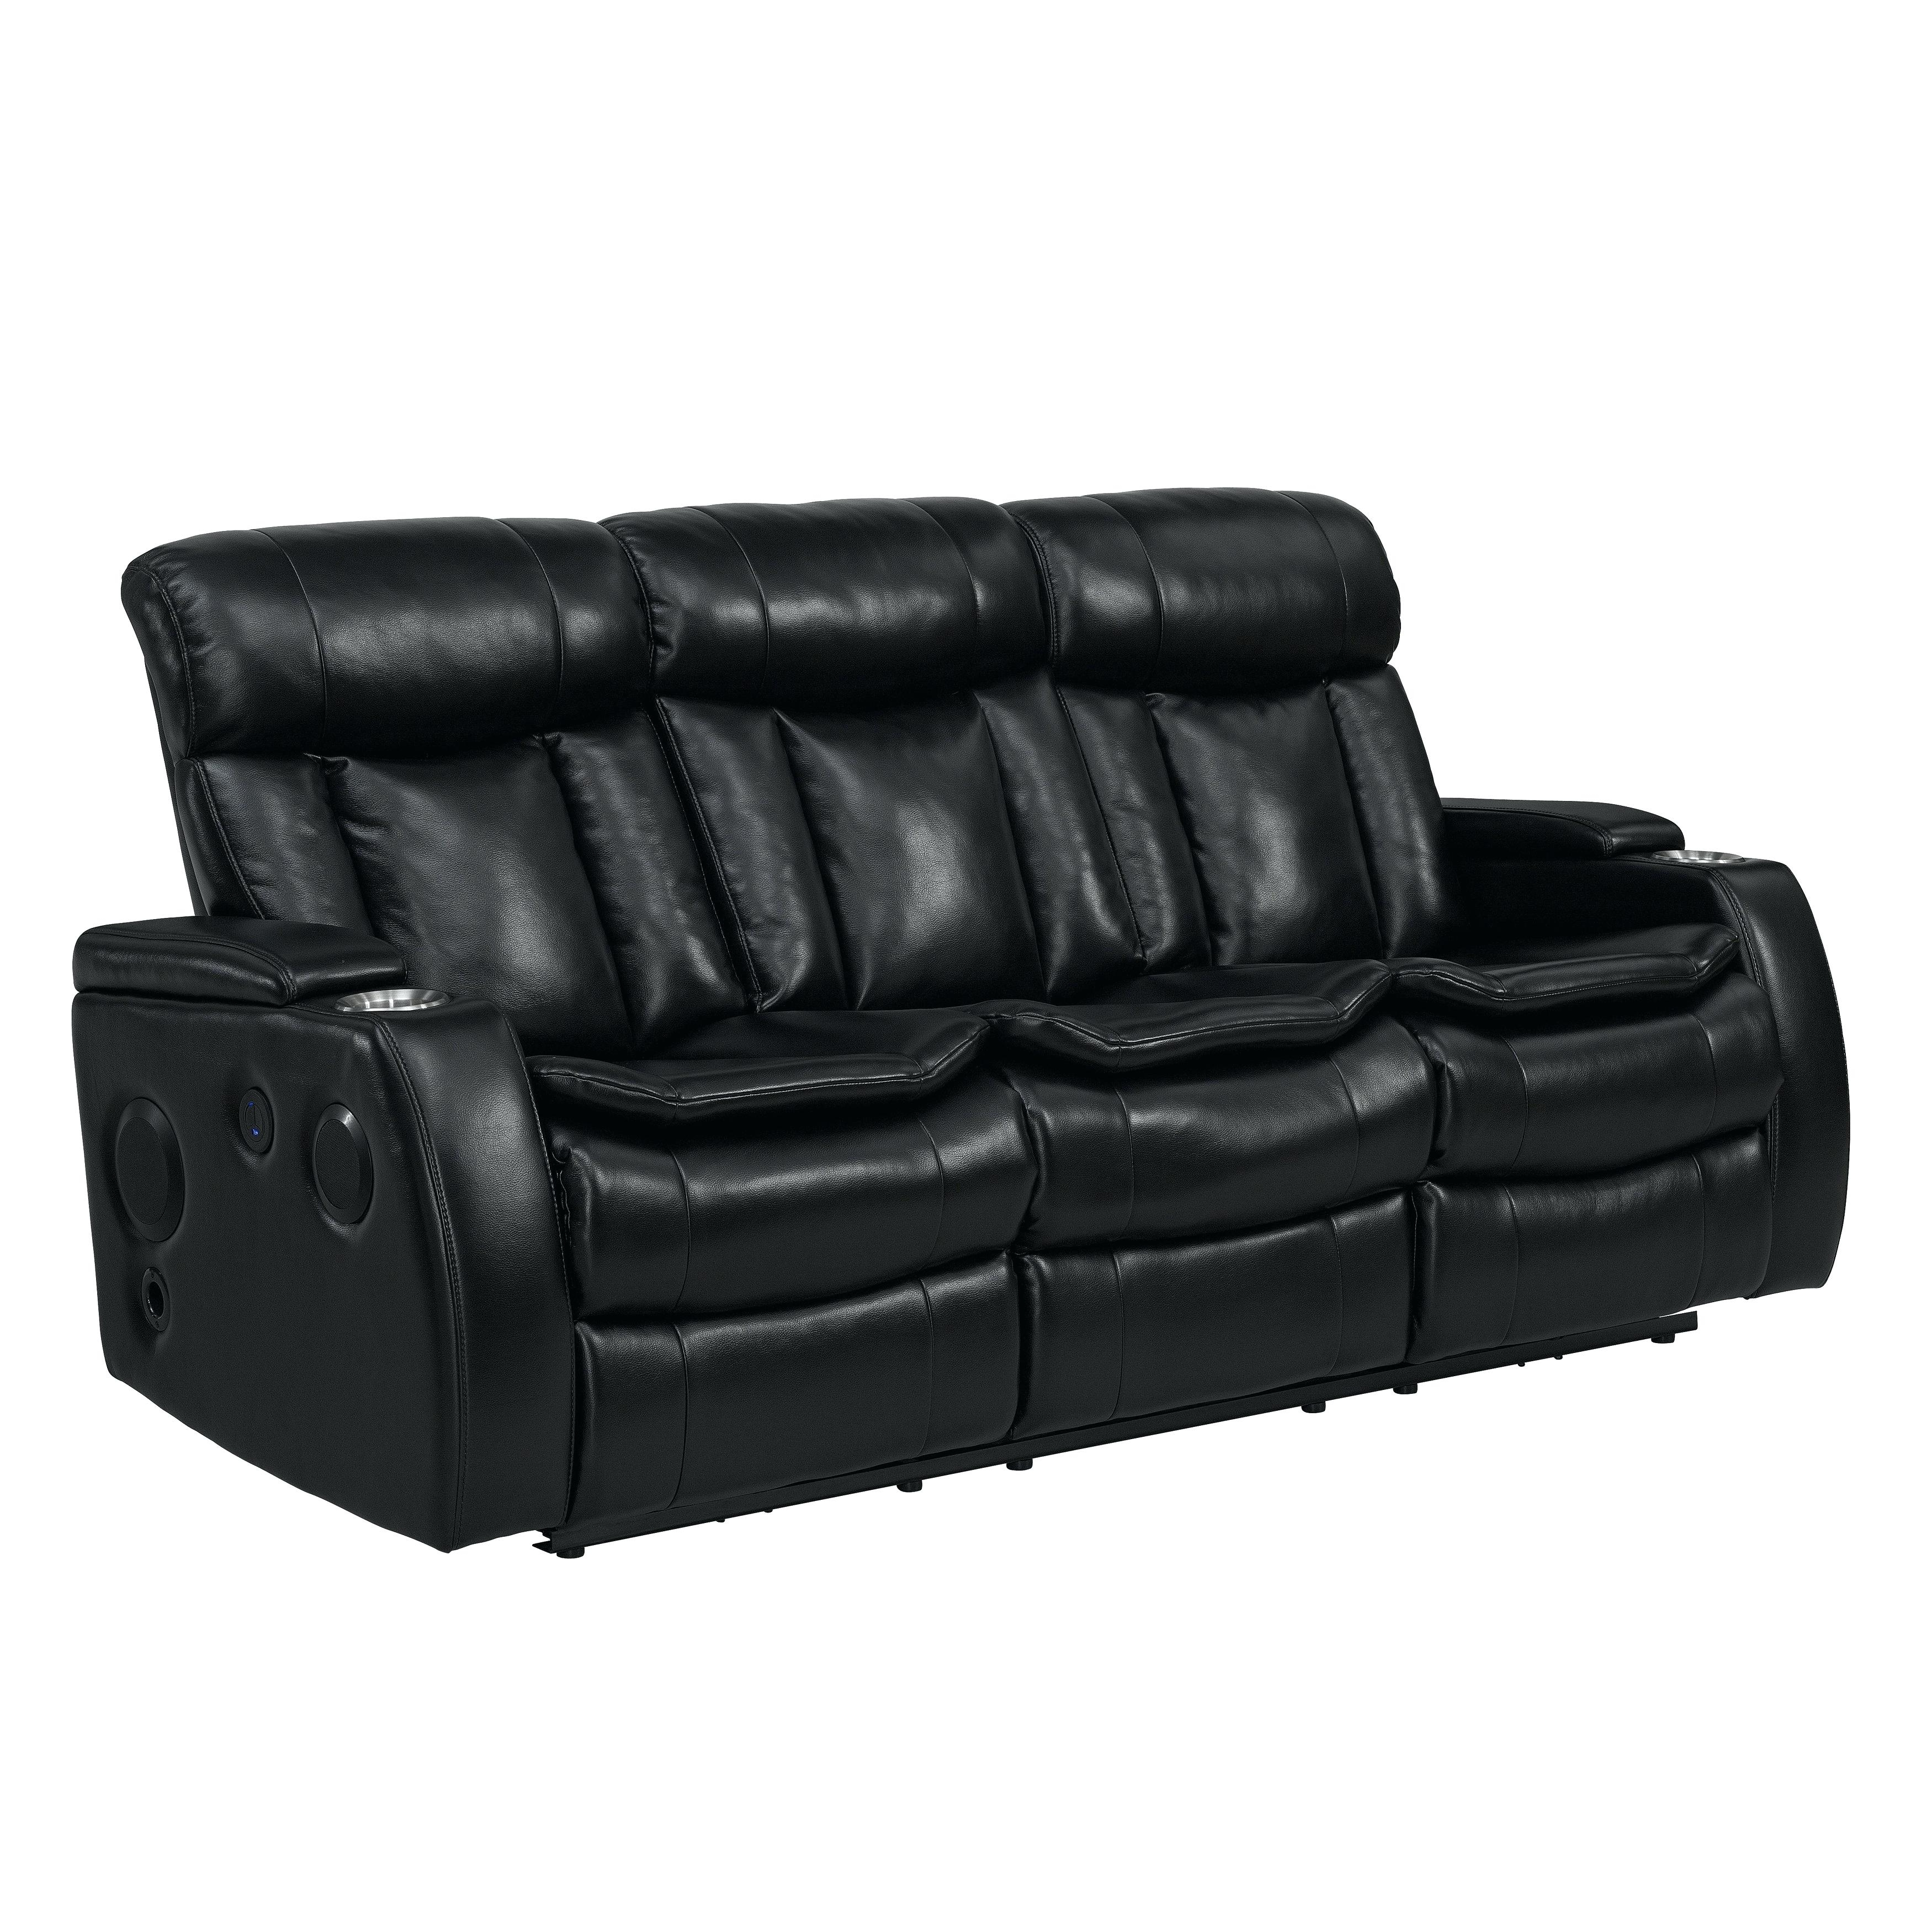 Black Sofa S Scinavian Set Philippines Sectional Sleeper Chair Covers – Within Philippines Sectional Sofas (View 10 of 10)